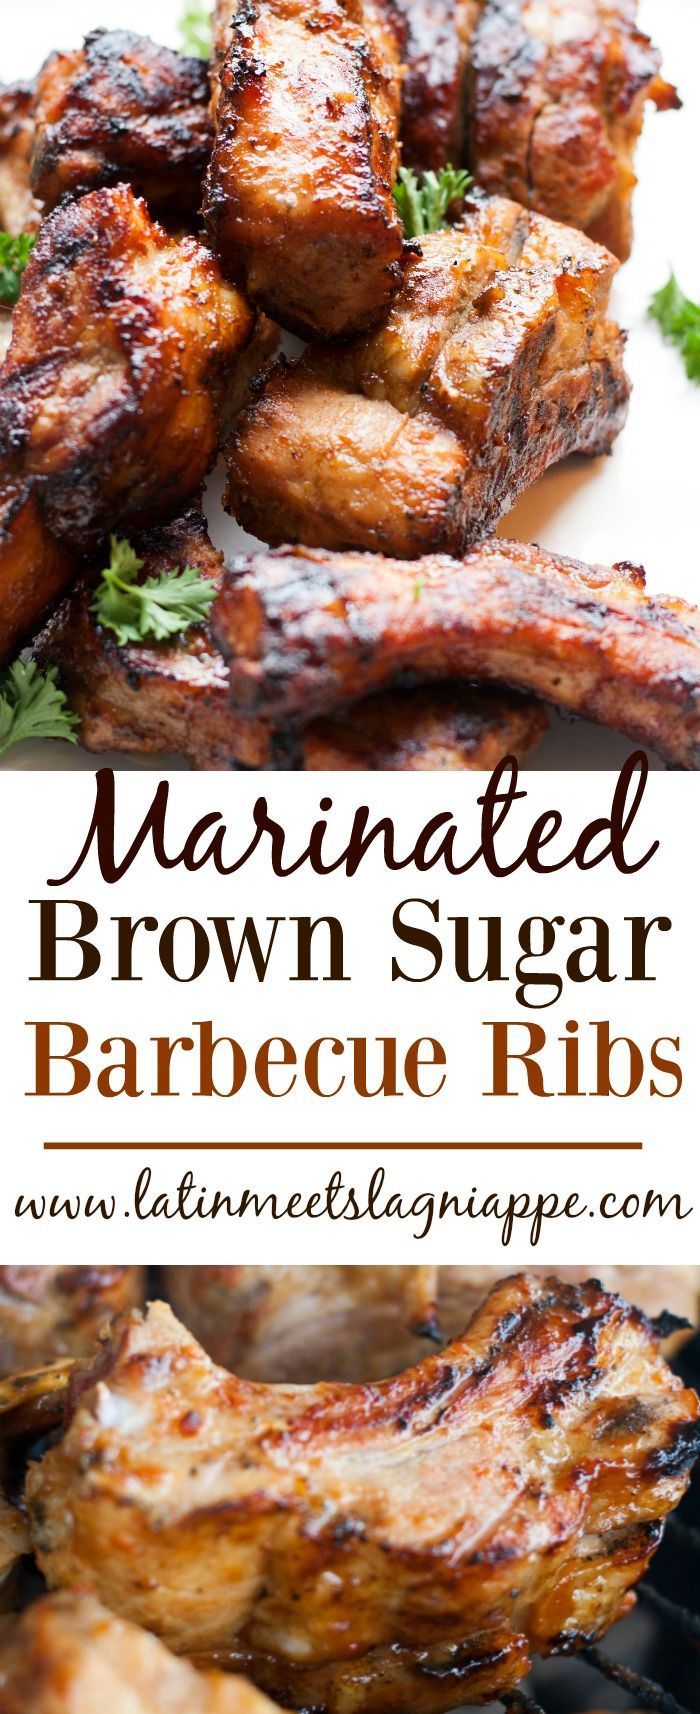 Marinated  Brown Sugar Barbecue Ribs - such a delicious way to enjoy ribs! #Ad #HogWildThrowdown